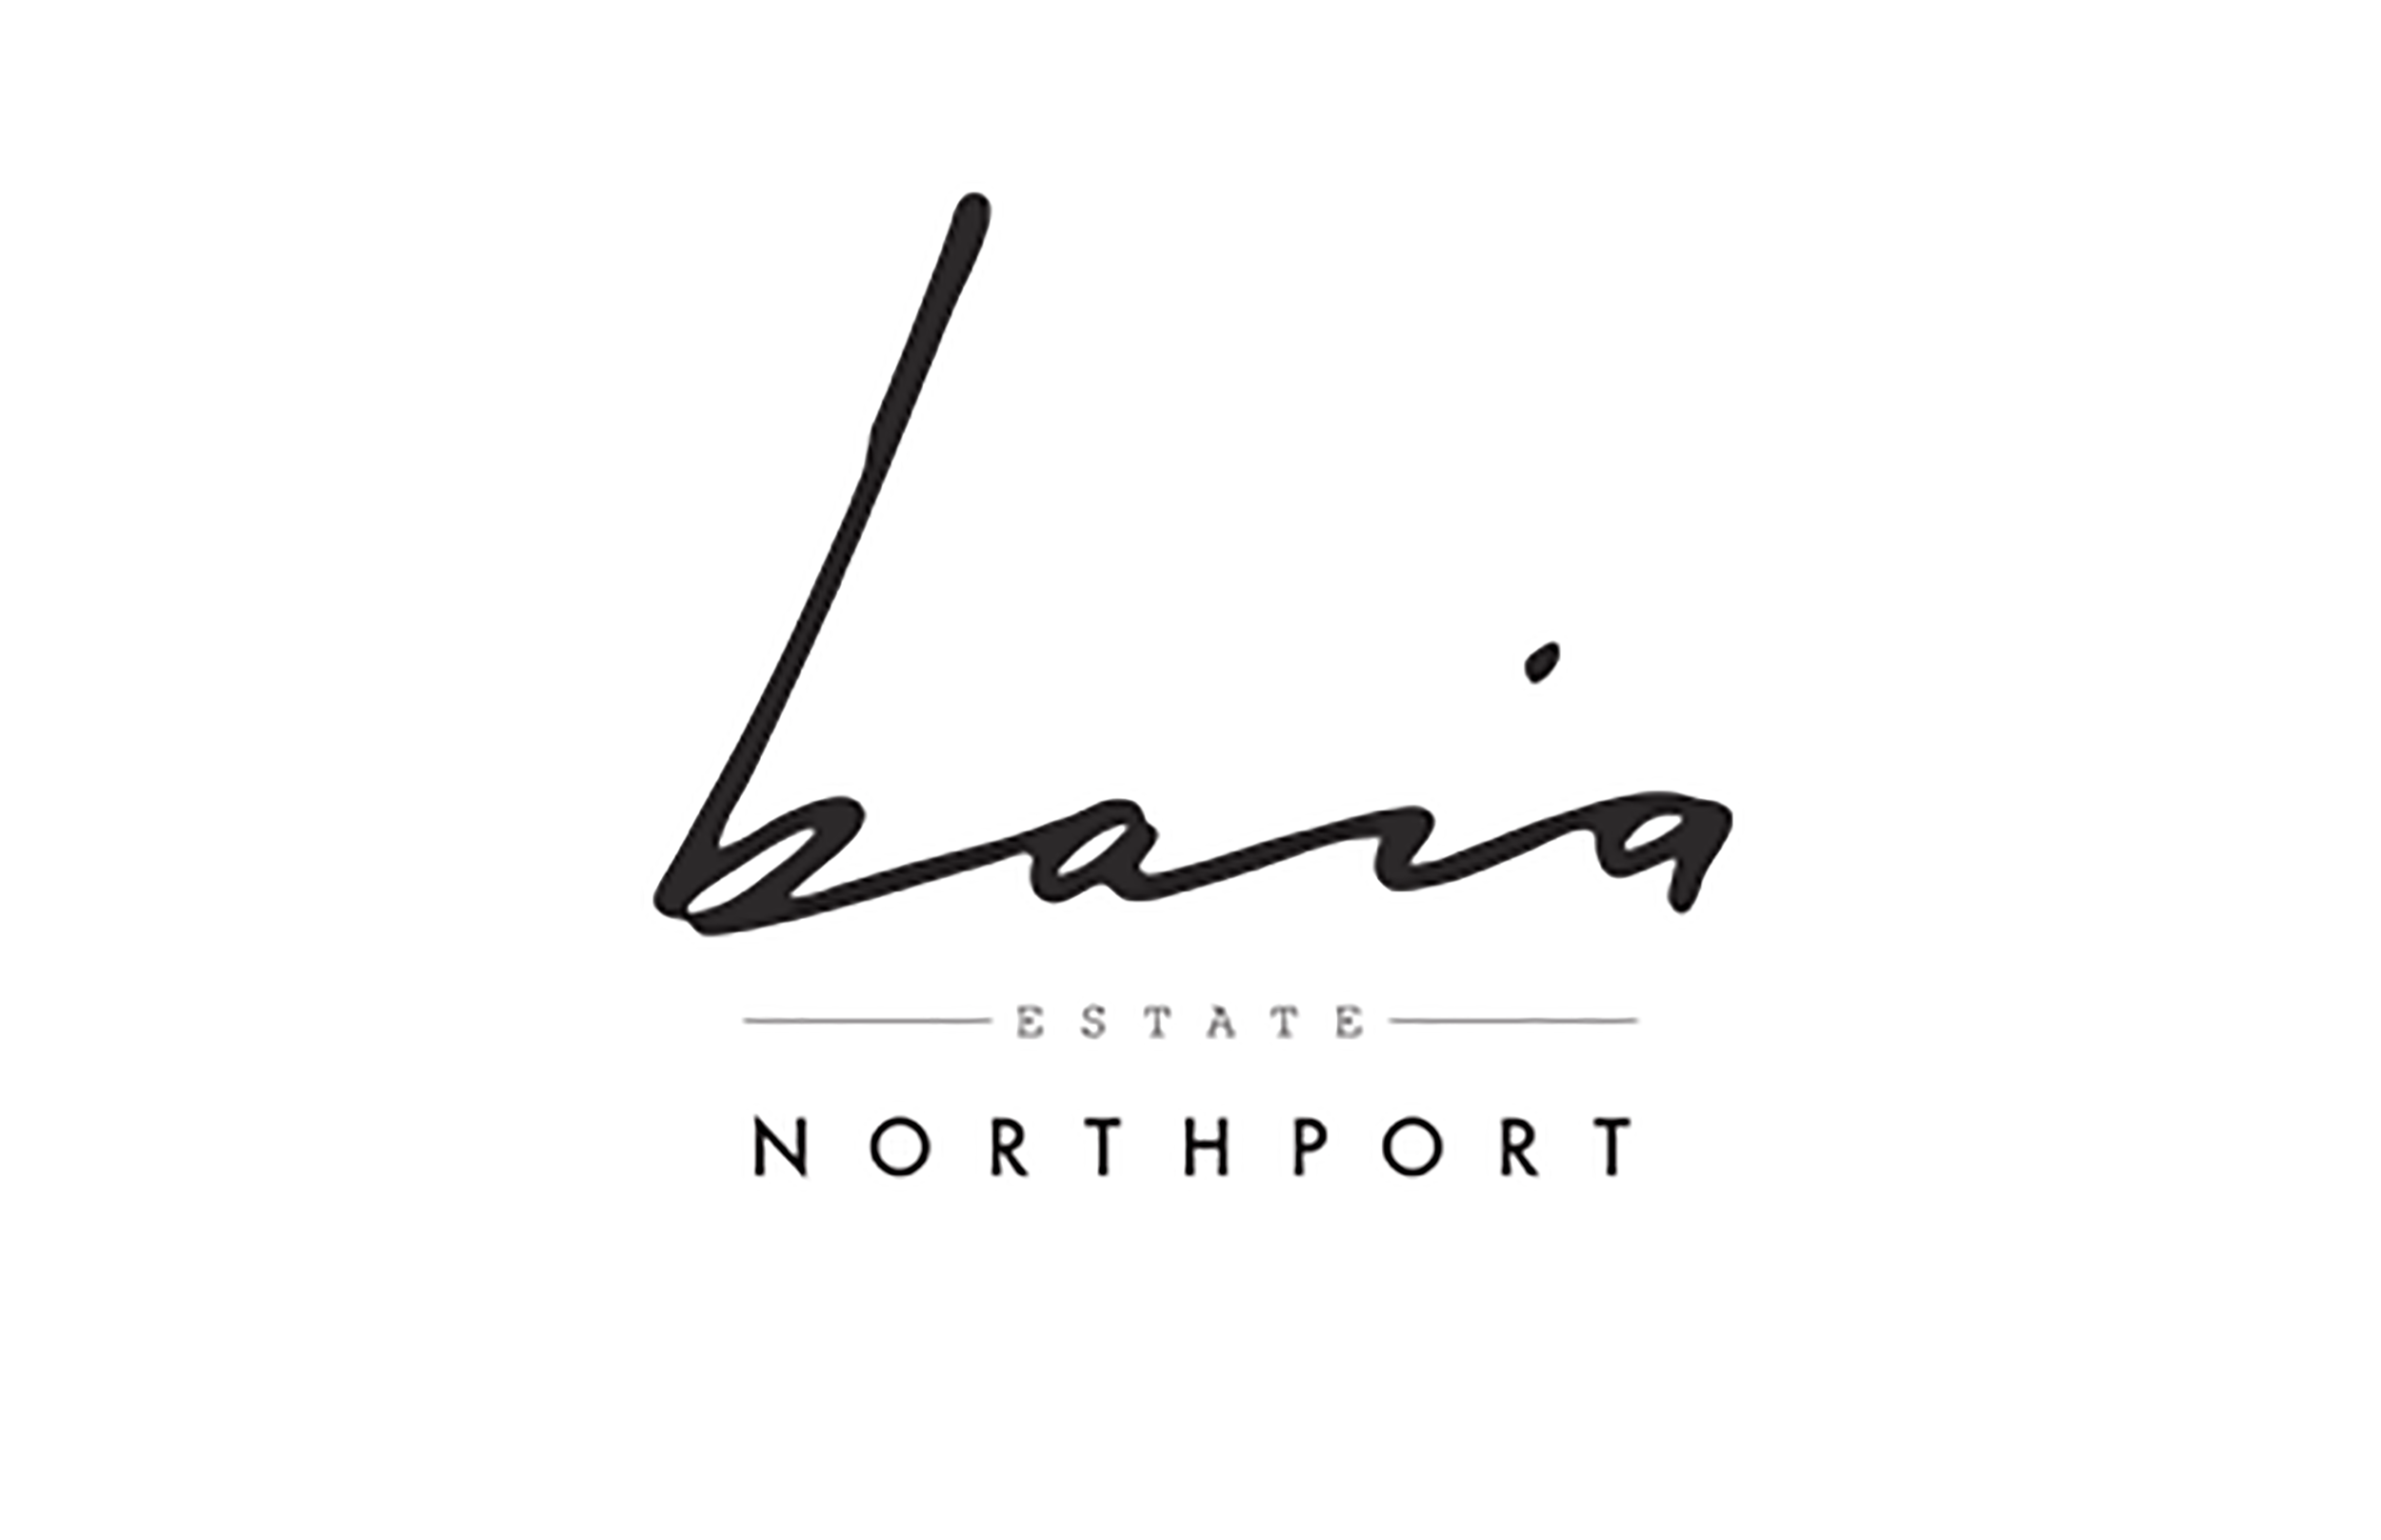 BaiaEstate_NorthportLogo-2500.png